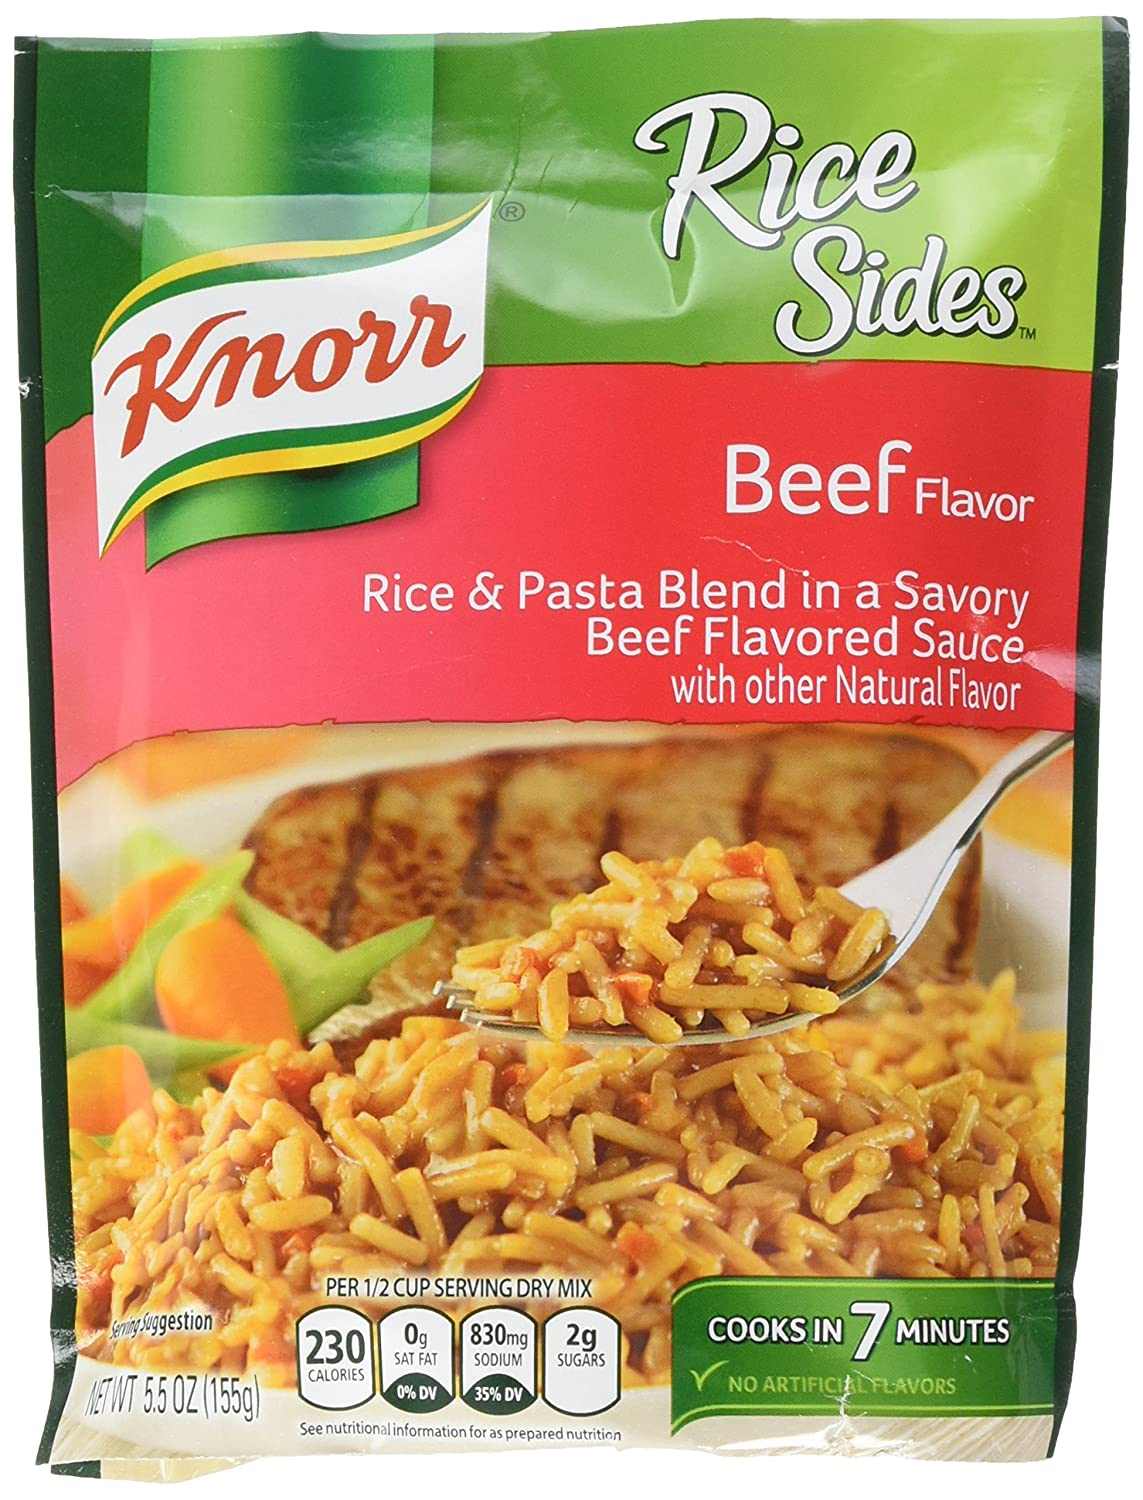 Amazon Com Knorr Rice Sides For Delicious And Easy Rice Meals Beef No Artificial Flavors No Colors From Artificial Sources No Added Msg 5 5 Oz Pack Of 8 Grocery Gourmet Food